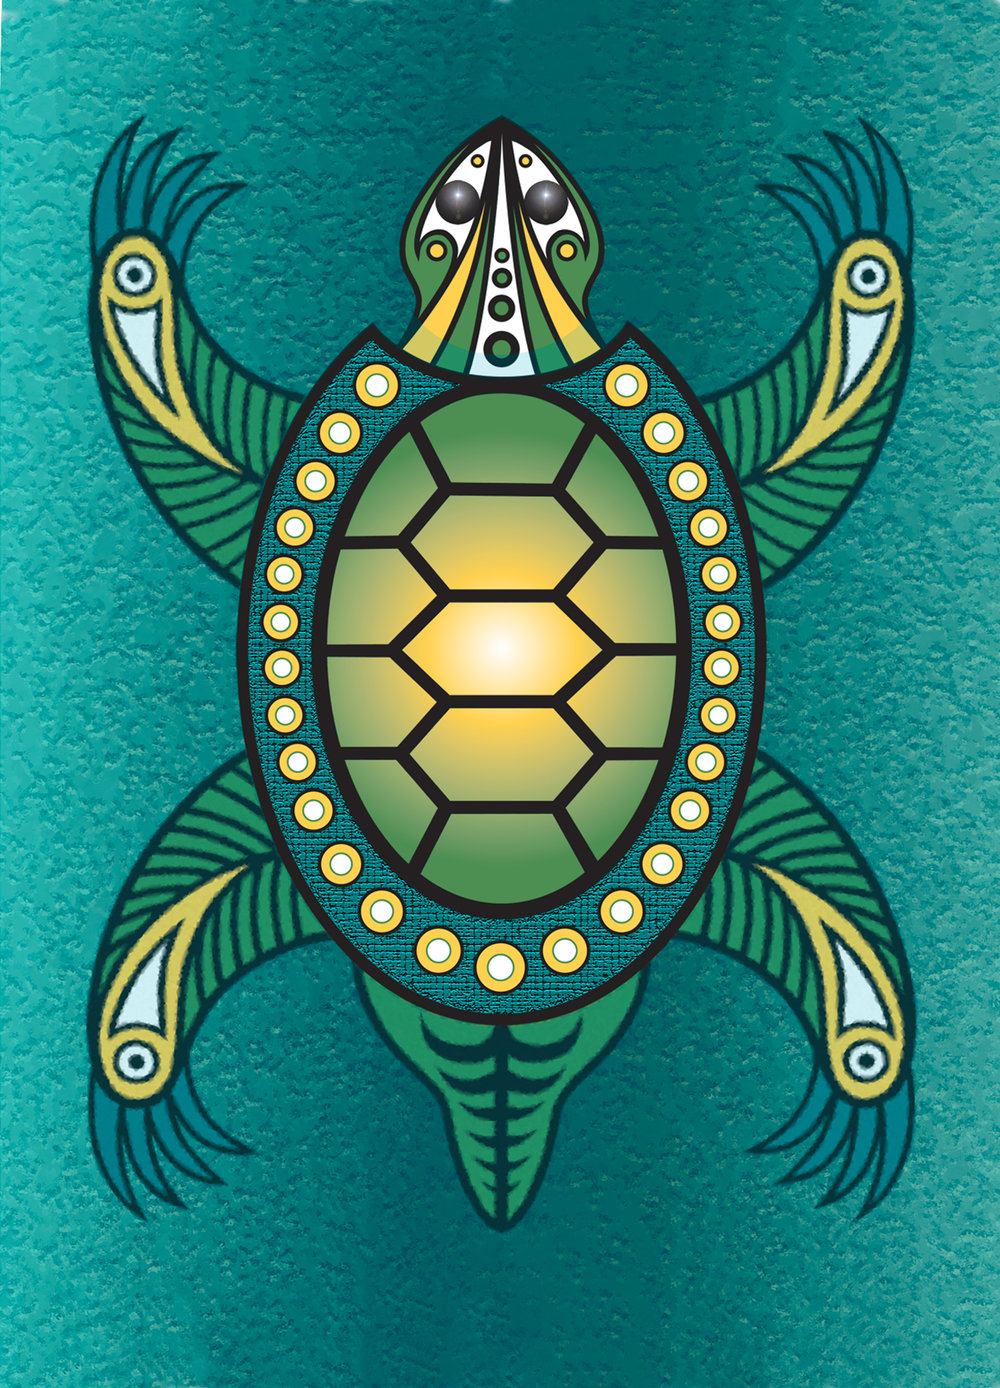 Turtle-ClanDesign-8x10.jpg